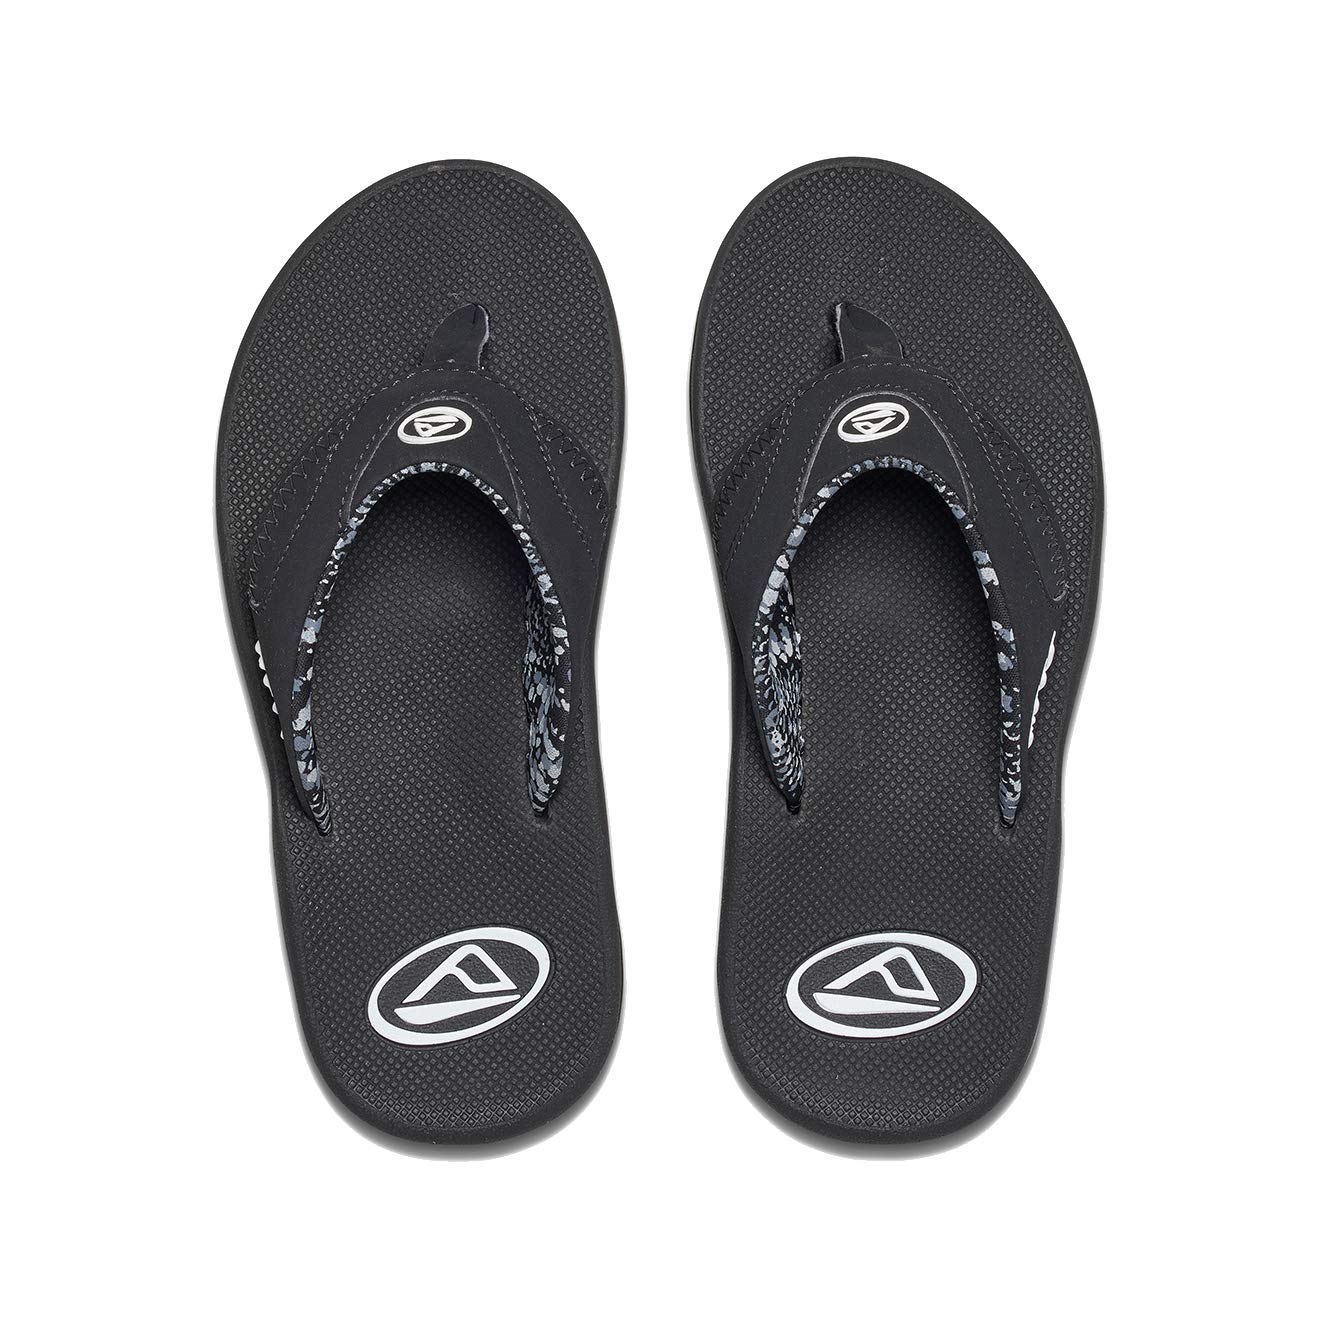 Reef Fanning Womens Sandals | Bottle Opener Flip Flops For Women